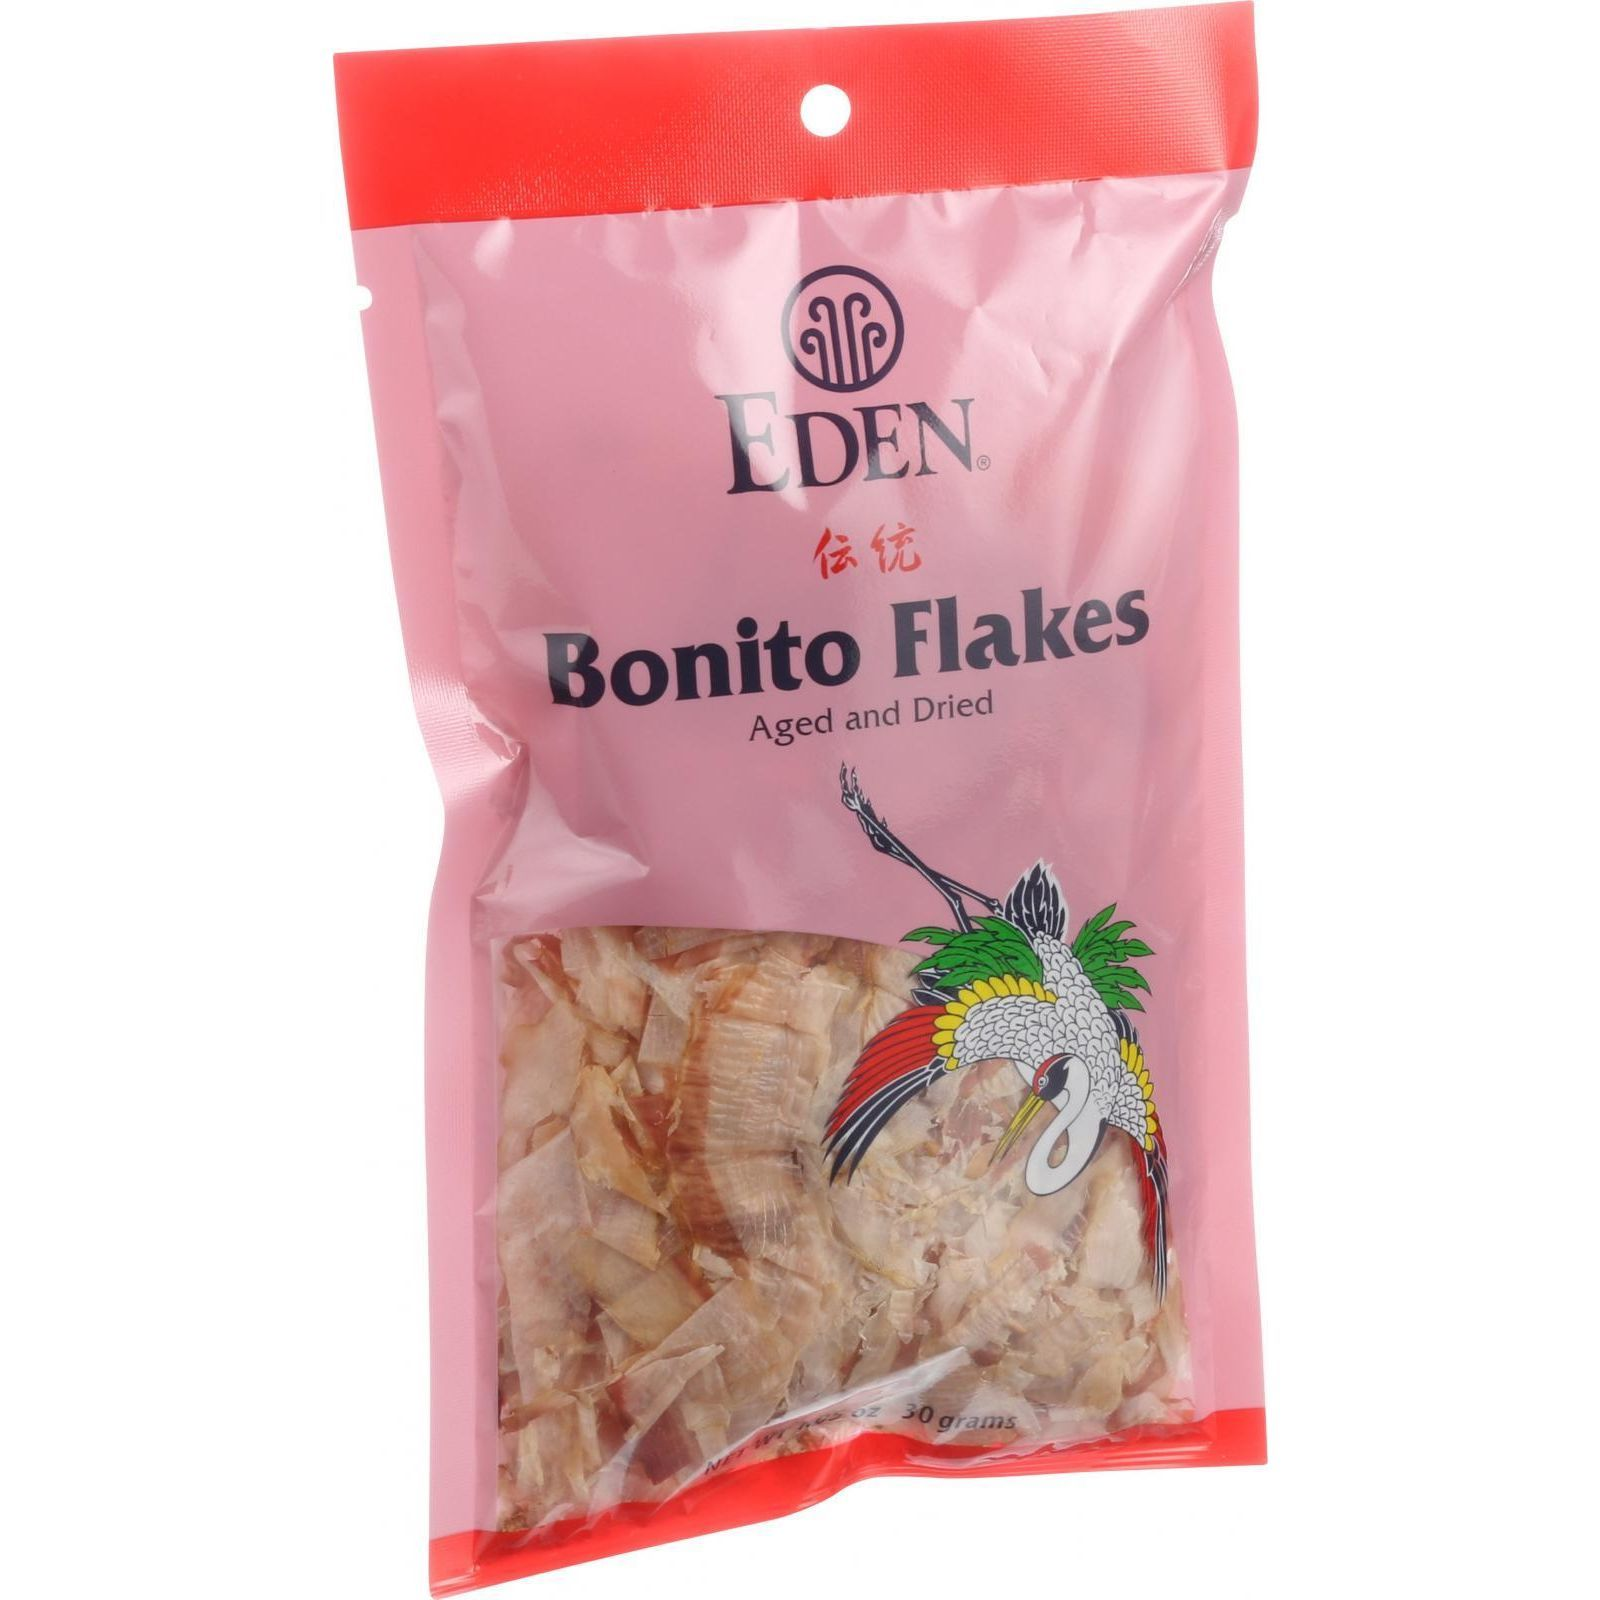 Eden Foods Bonito Flakes - Steamed Aged Dried - 1.05 oz